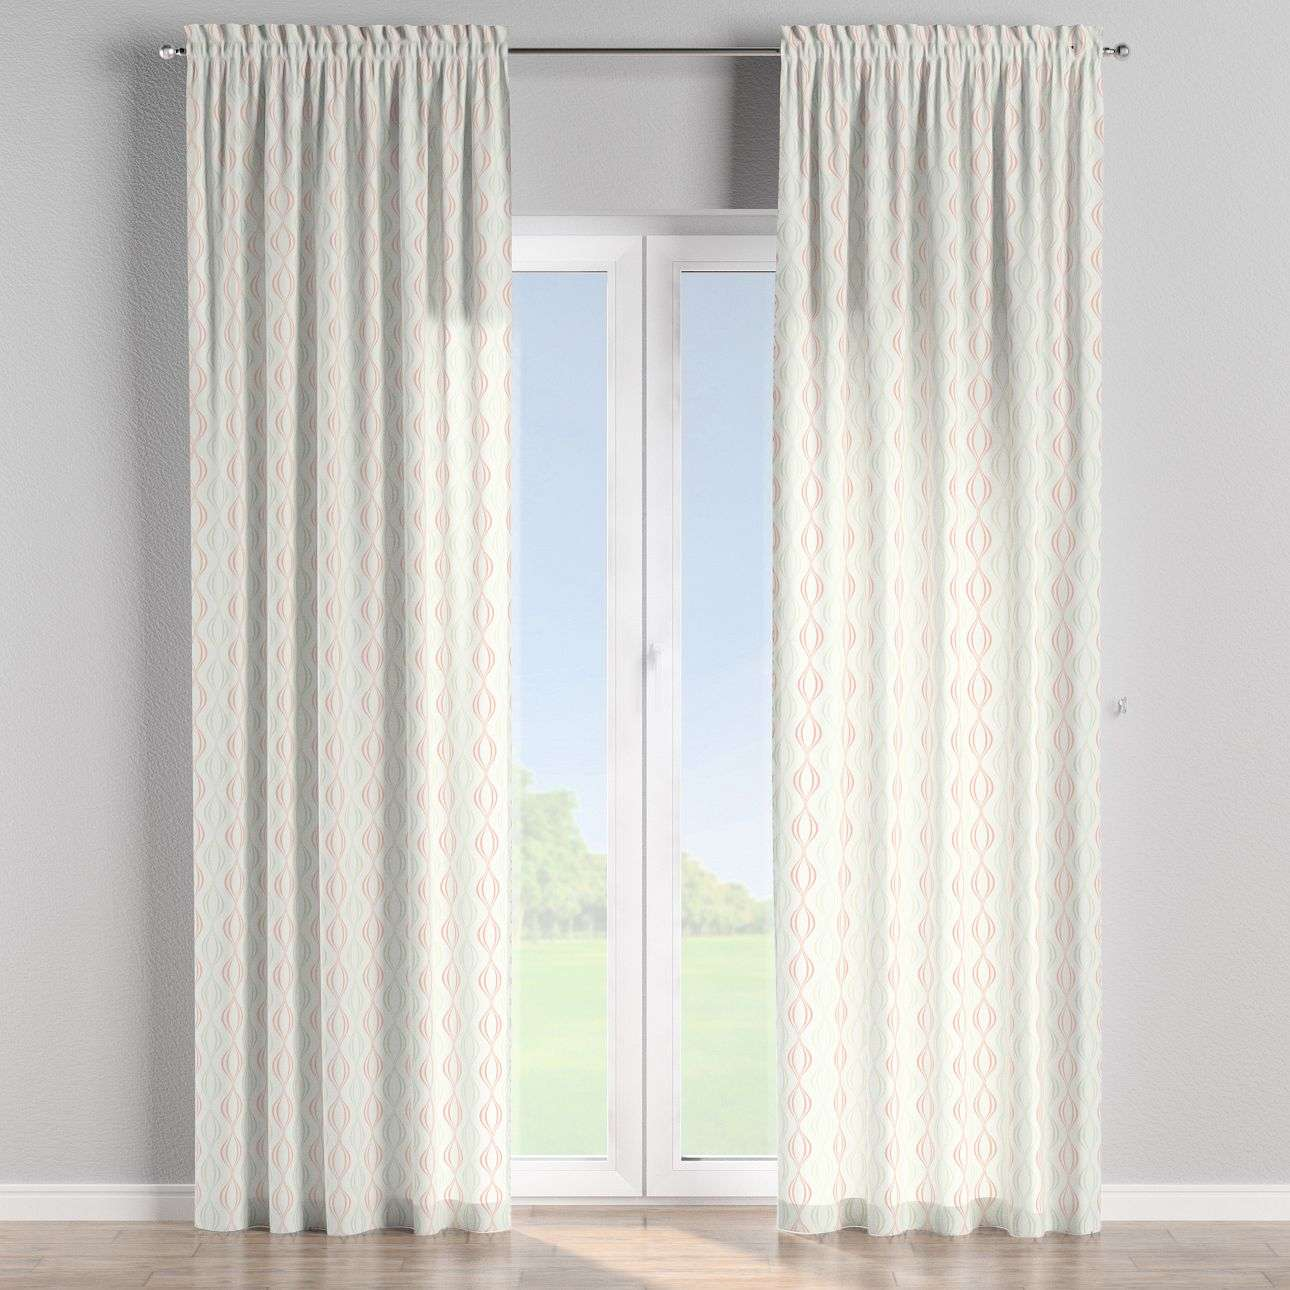 Slot and frill curtains in collection Geometric, fabric: 141-49